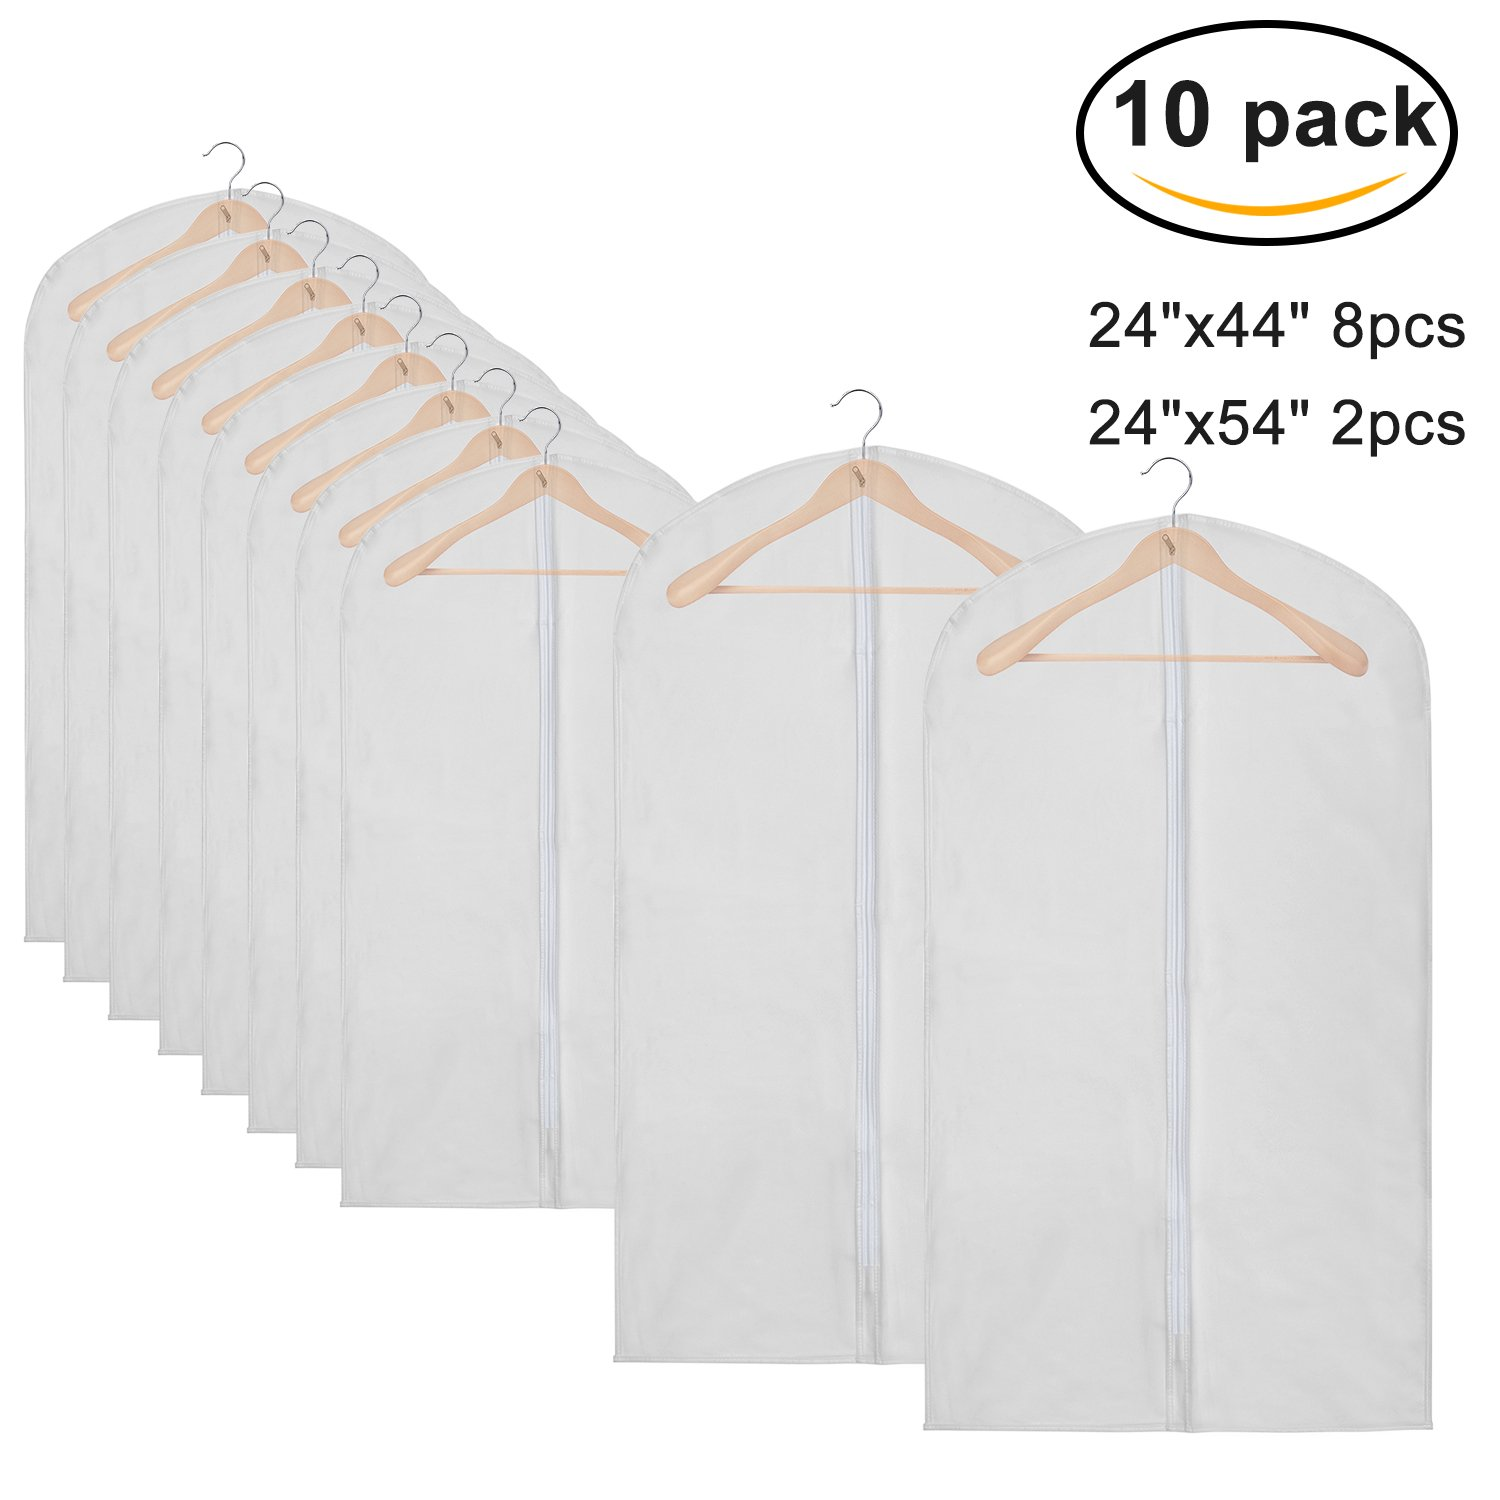 Pack of 10 PEVA Viewable Garment Bags, Full Zipper Breathable White Suit Bags, Light Weight, 8 Medium and 2 Large for Luggage, Dresses, Linens, Gown Storage or Travel